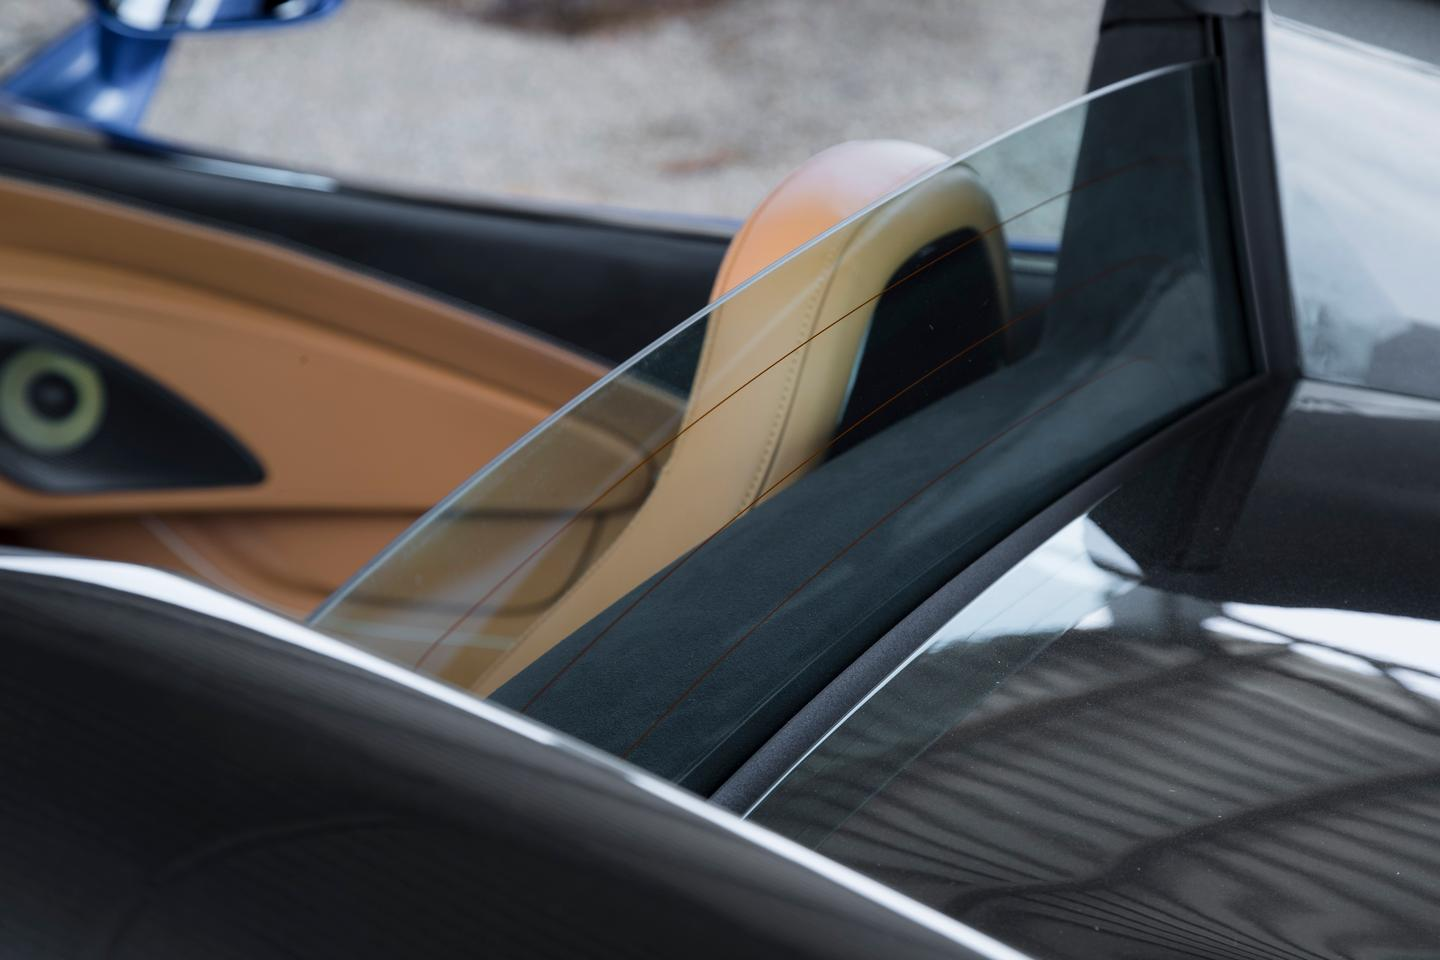 The rear glass behind the driver and front passneger in the McLaren 570S can be raised and lowered independent from the roof, allowing changes in airflow as needed